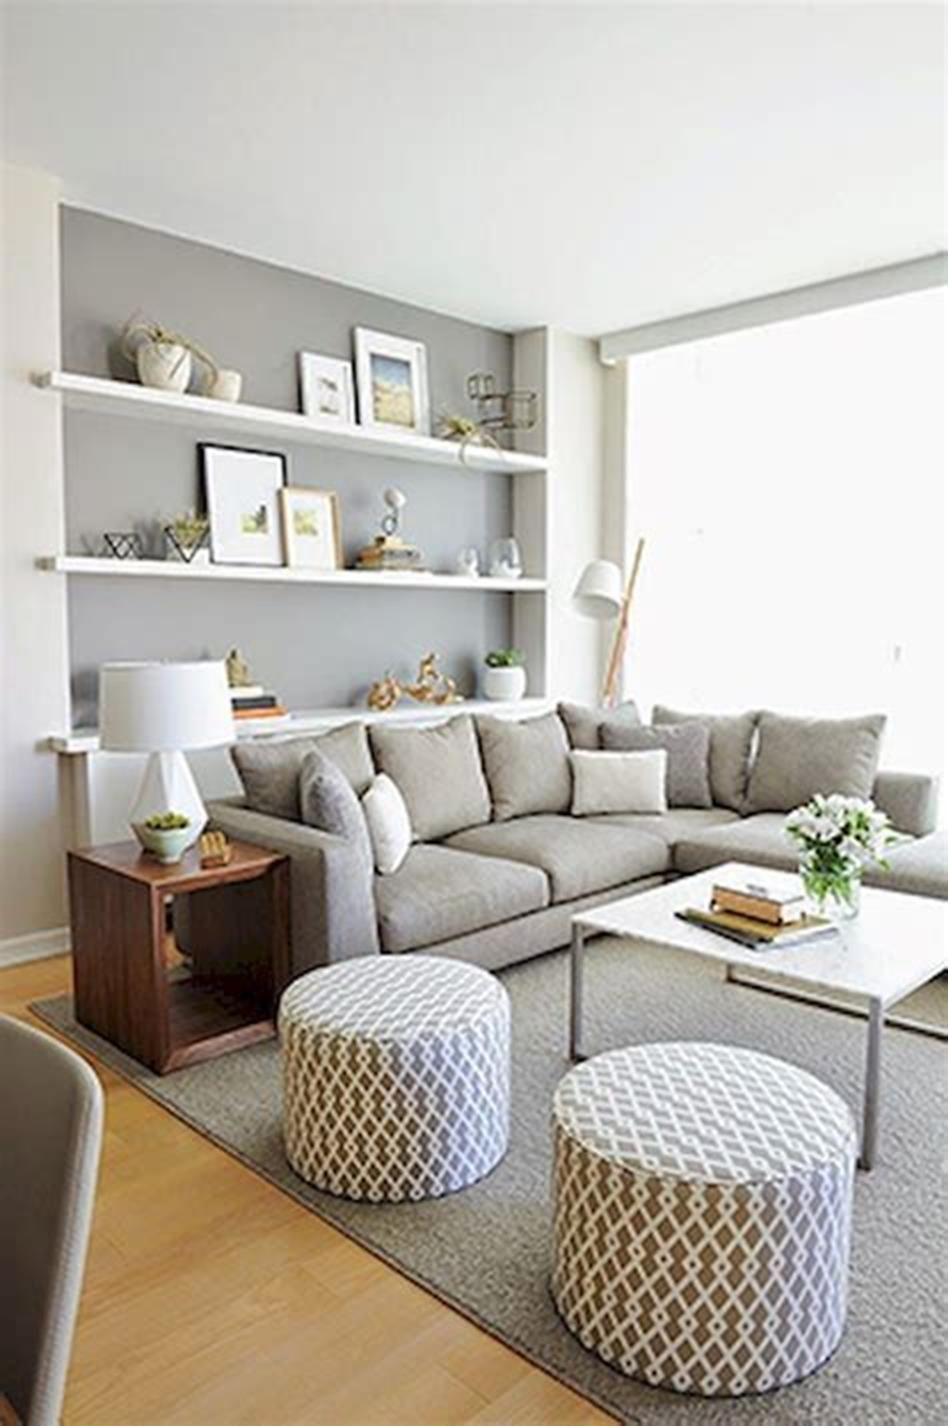 26 Amazing Simple Decorating Ideas For Small Living Room